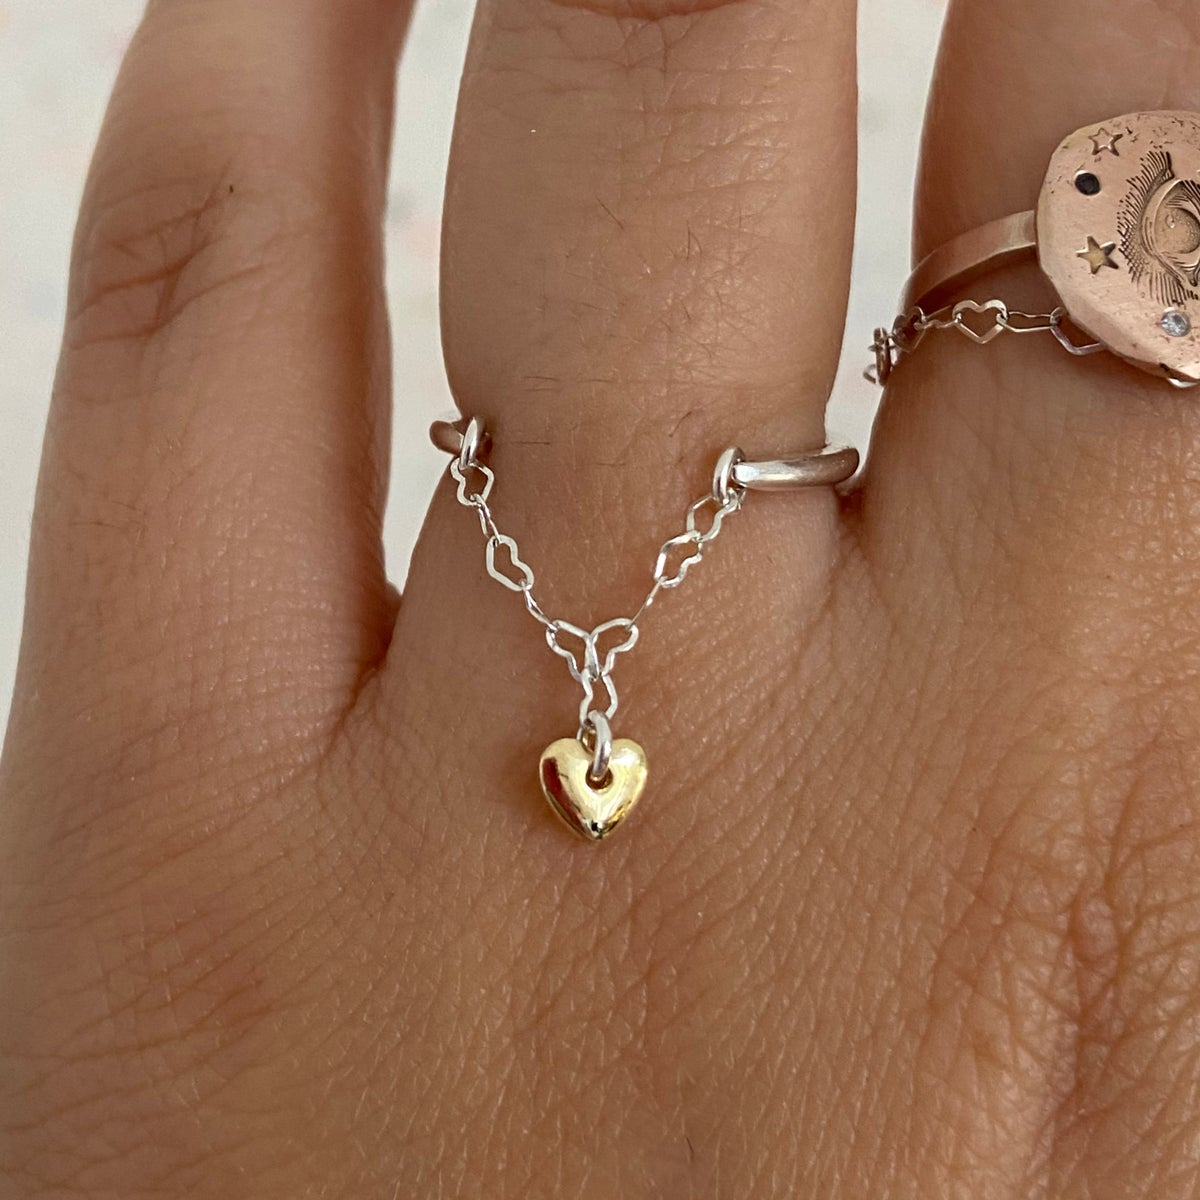 Image of double heart hanging ring